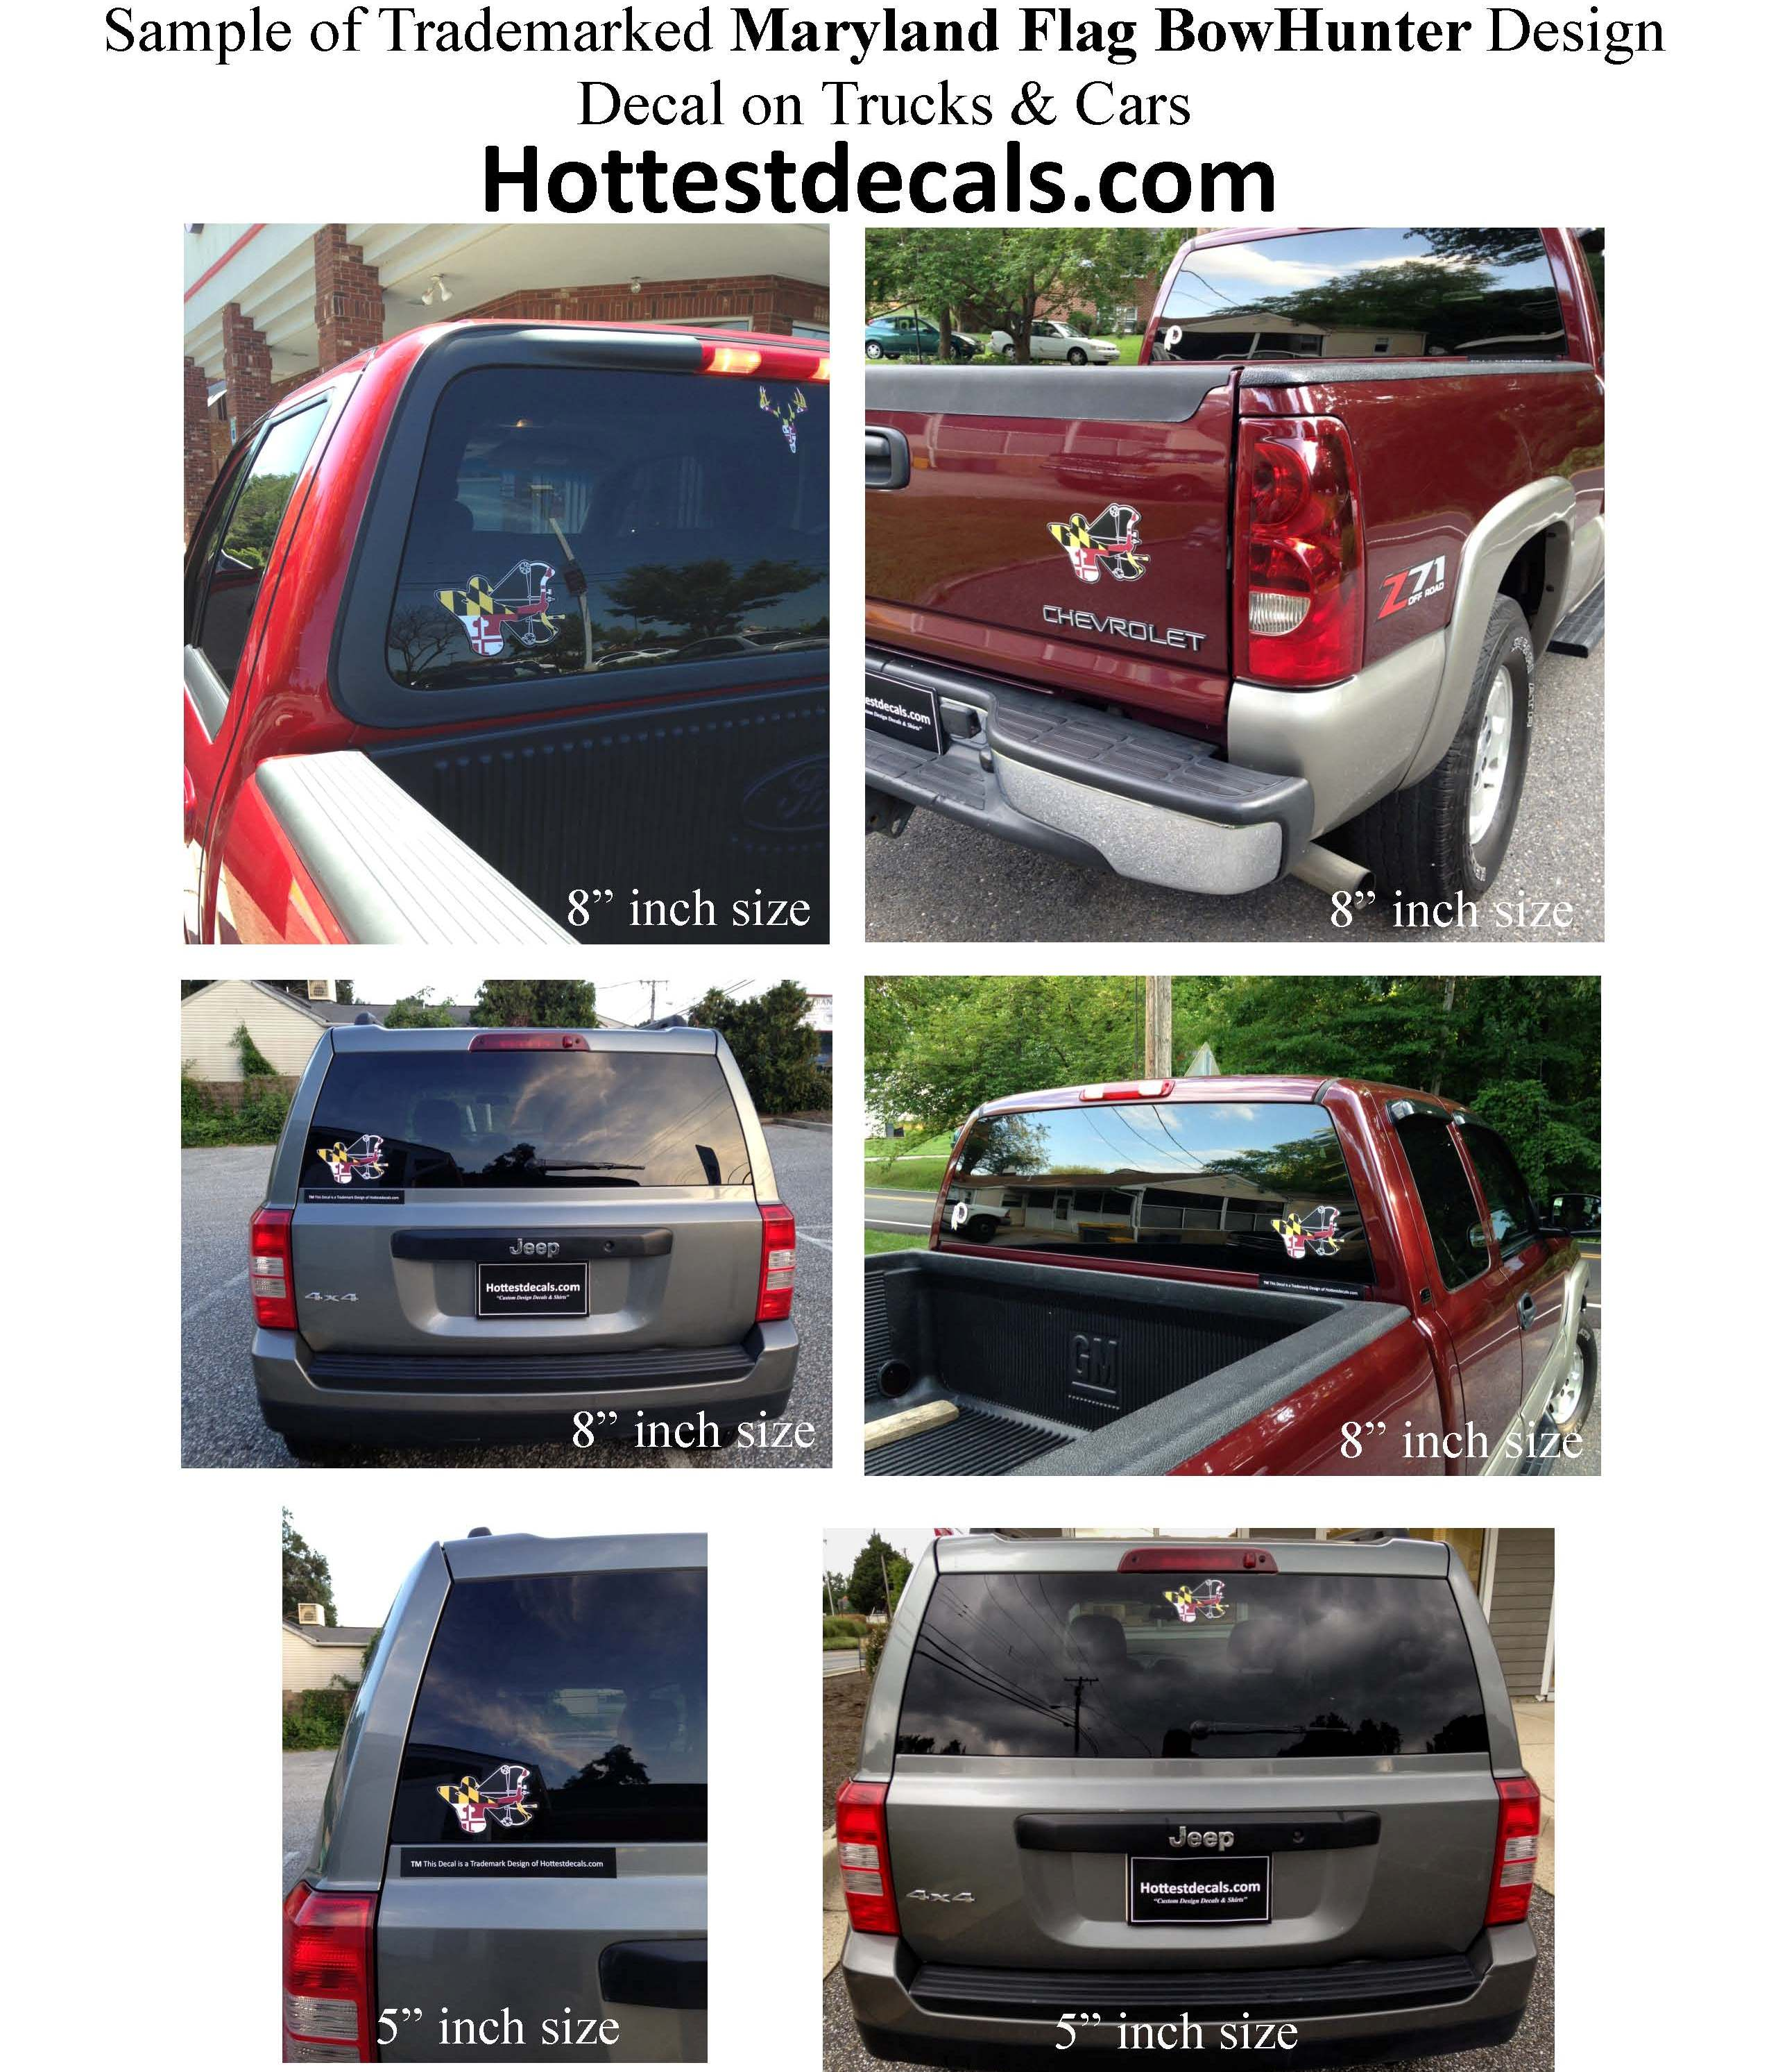 Maryland BowHunter decal TradeMark of Hottestdecals.com July 30-2015